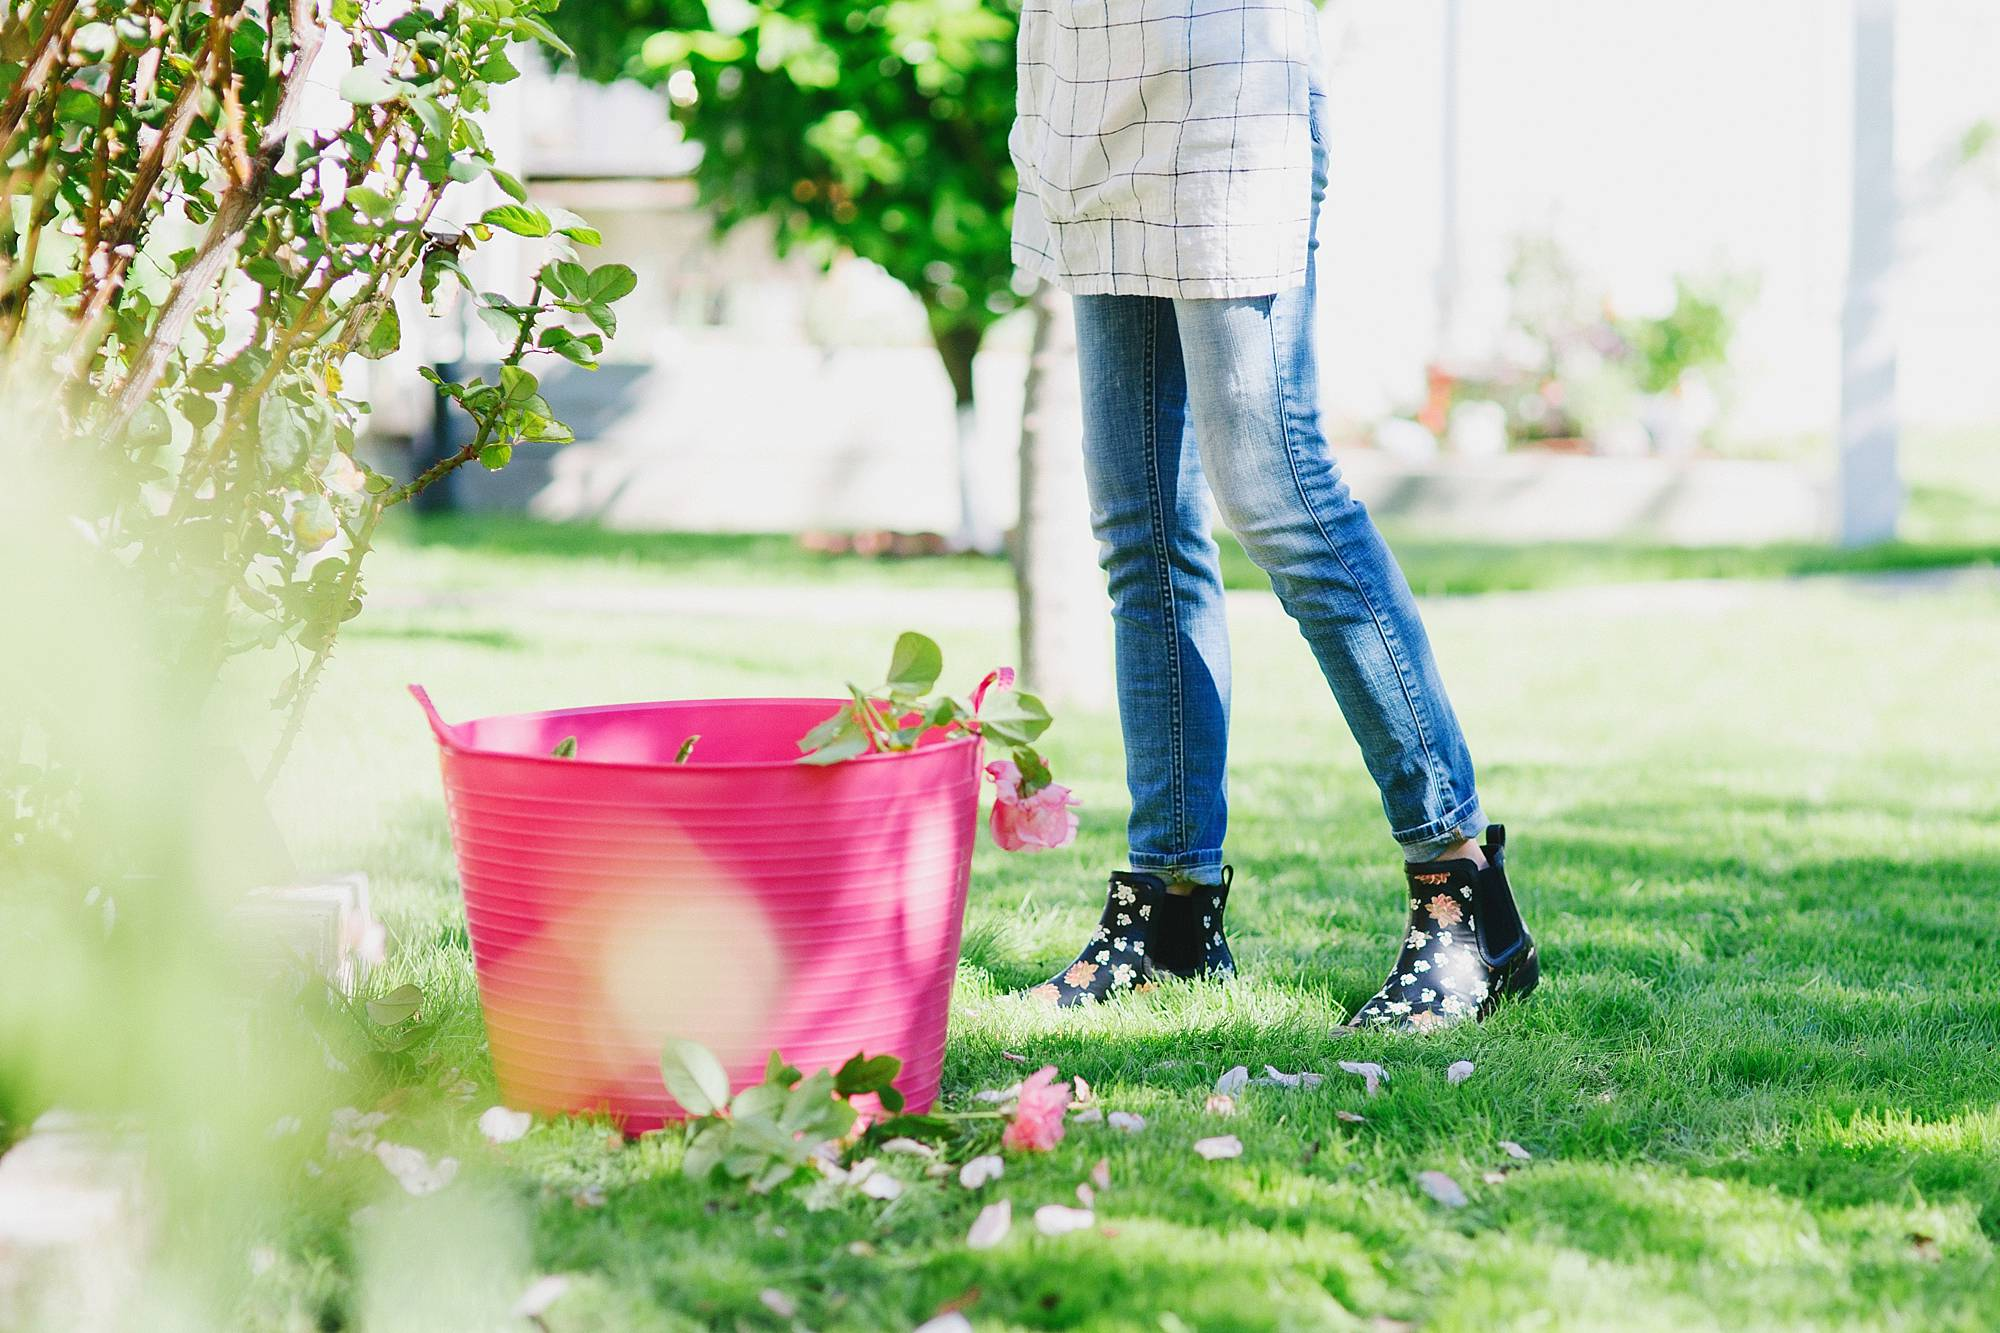 in the garden cutting roses //chai floral leather booties in black FitFlop cute booties and garden booties too with a pink tubtrug